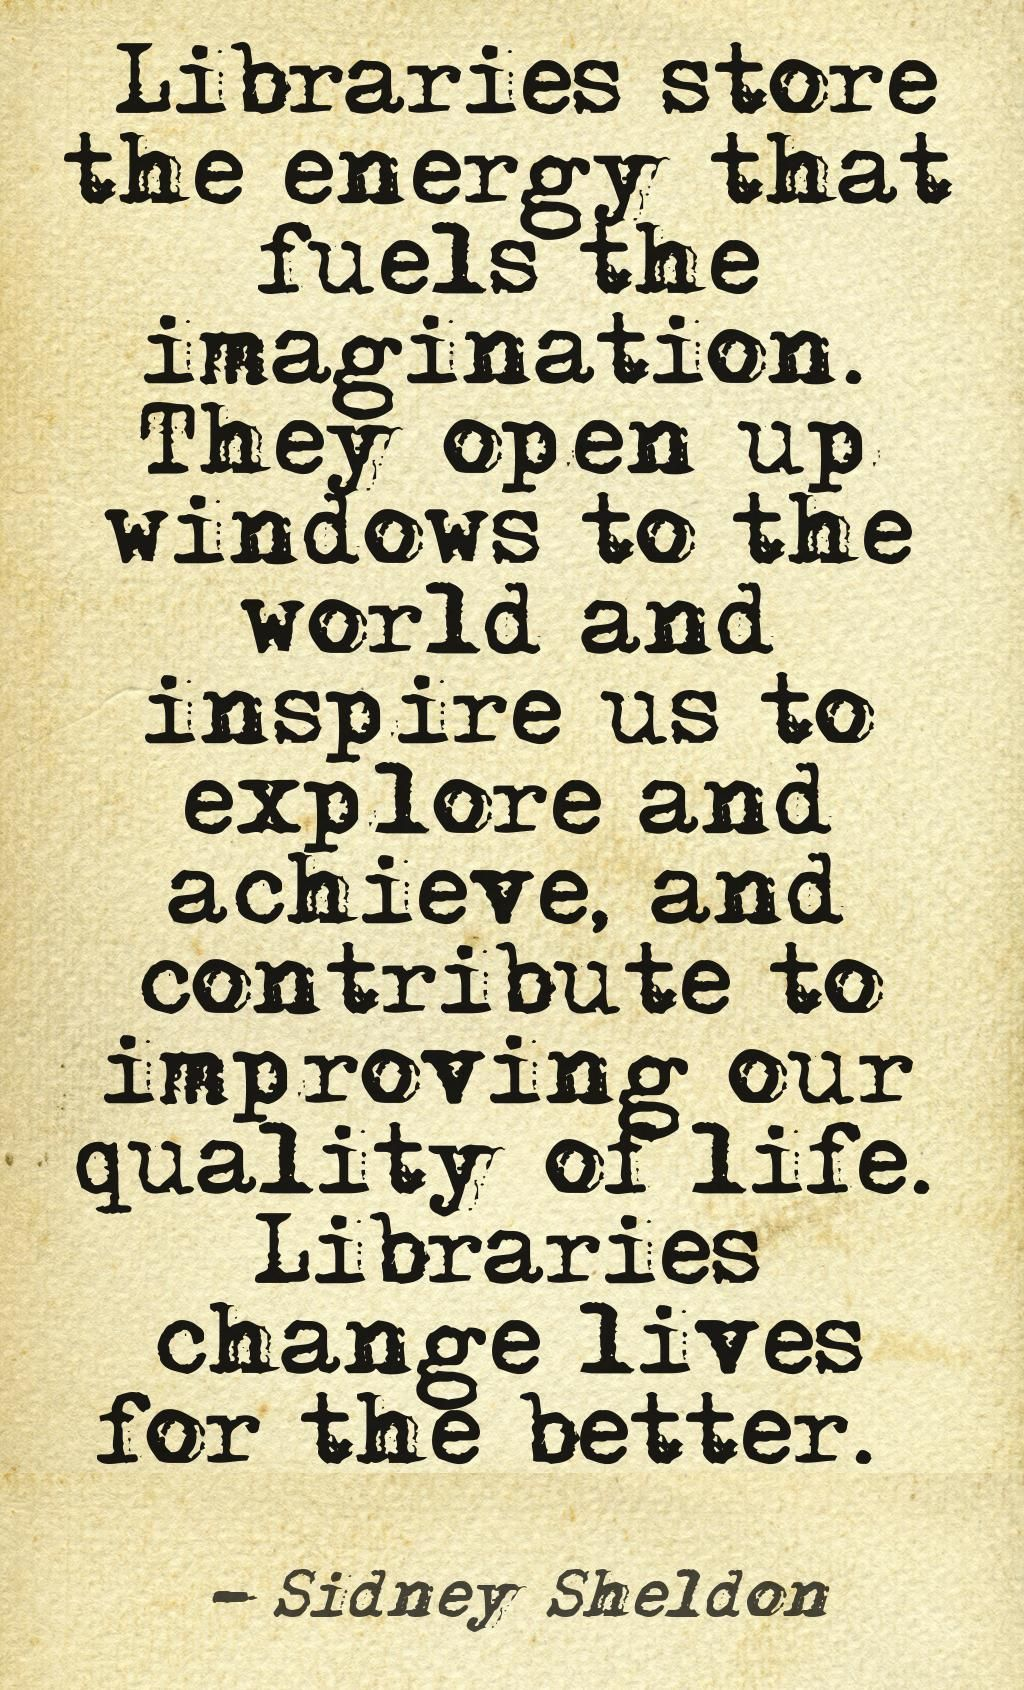 Rhyming Life Quotes Libraries Store The Energy That Fuels The Imaginationthey Open